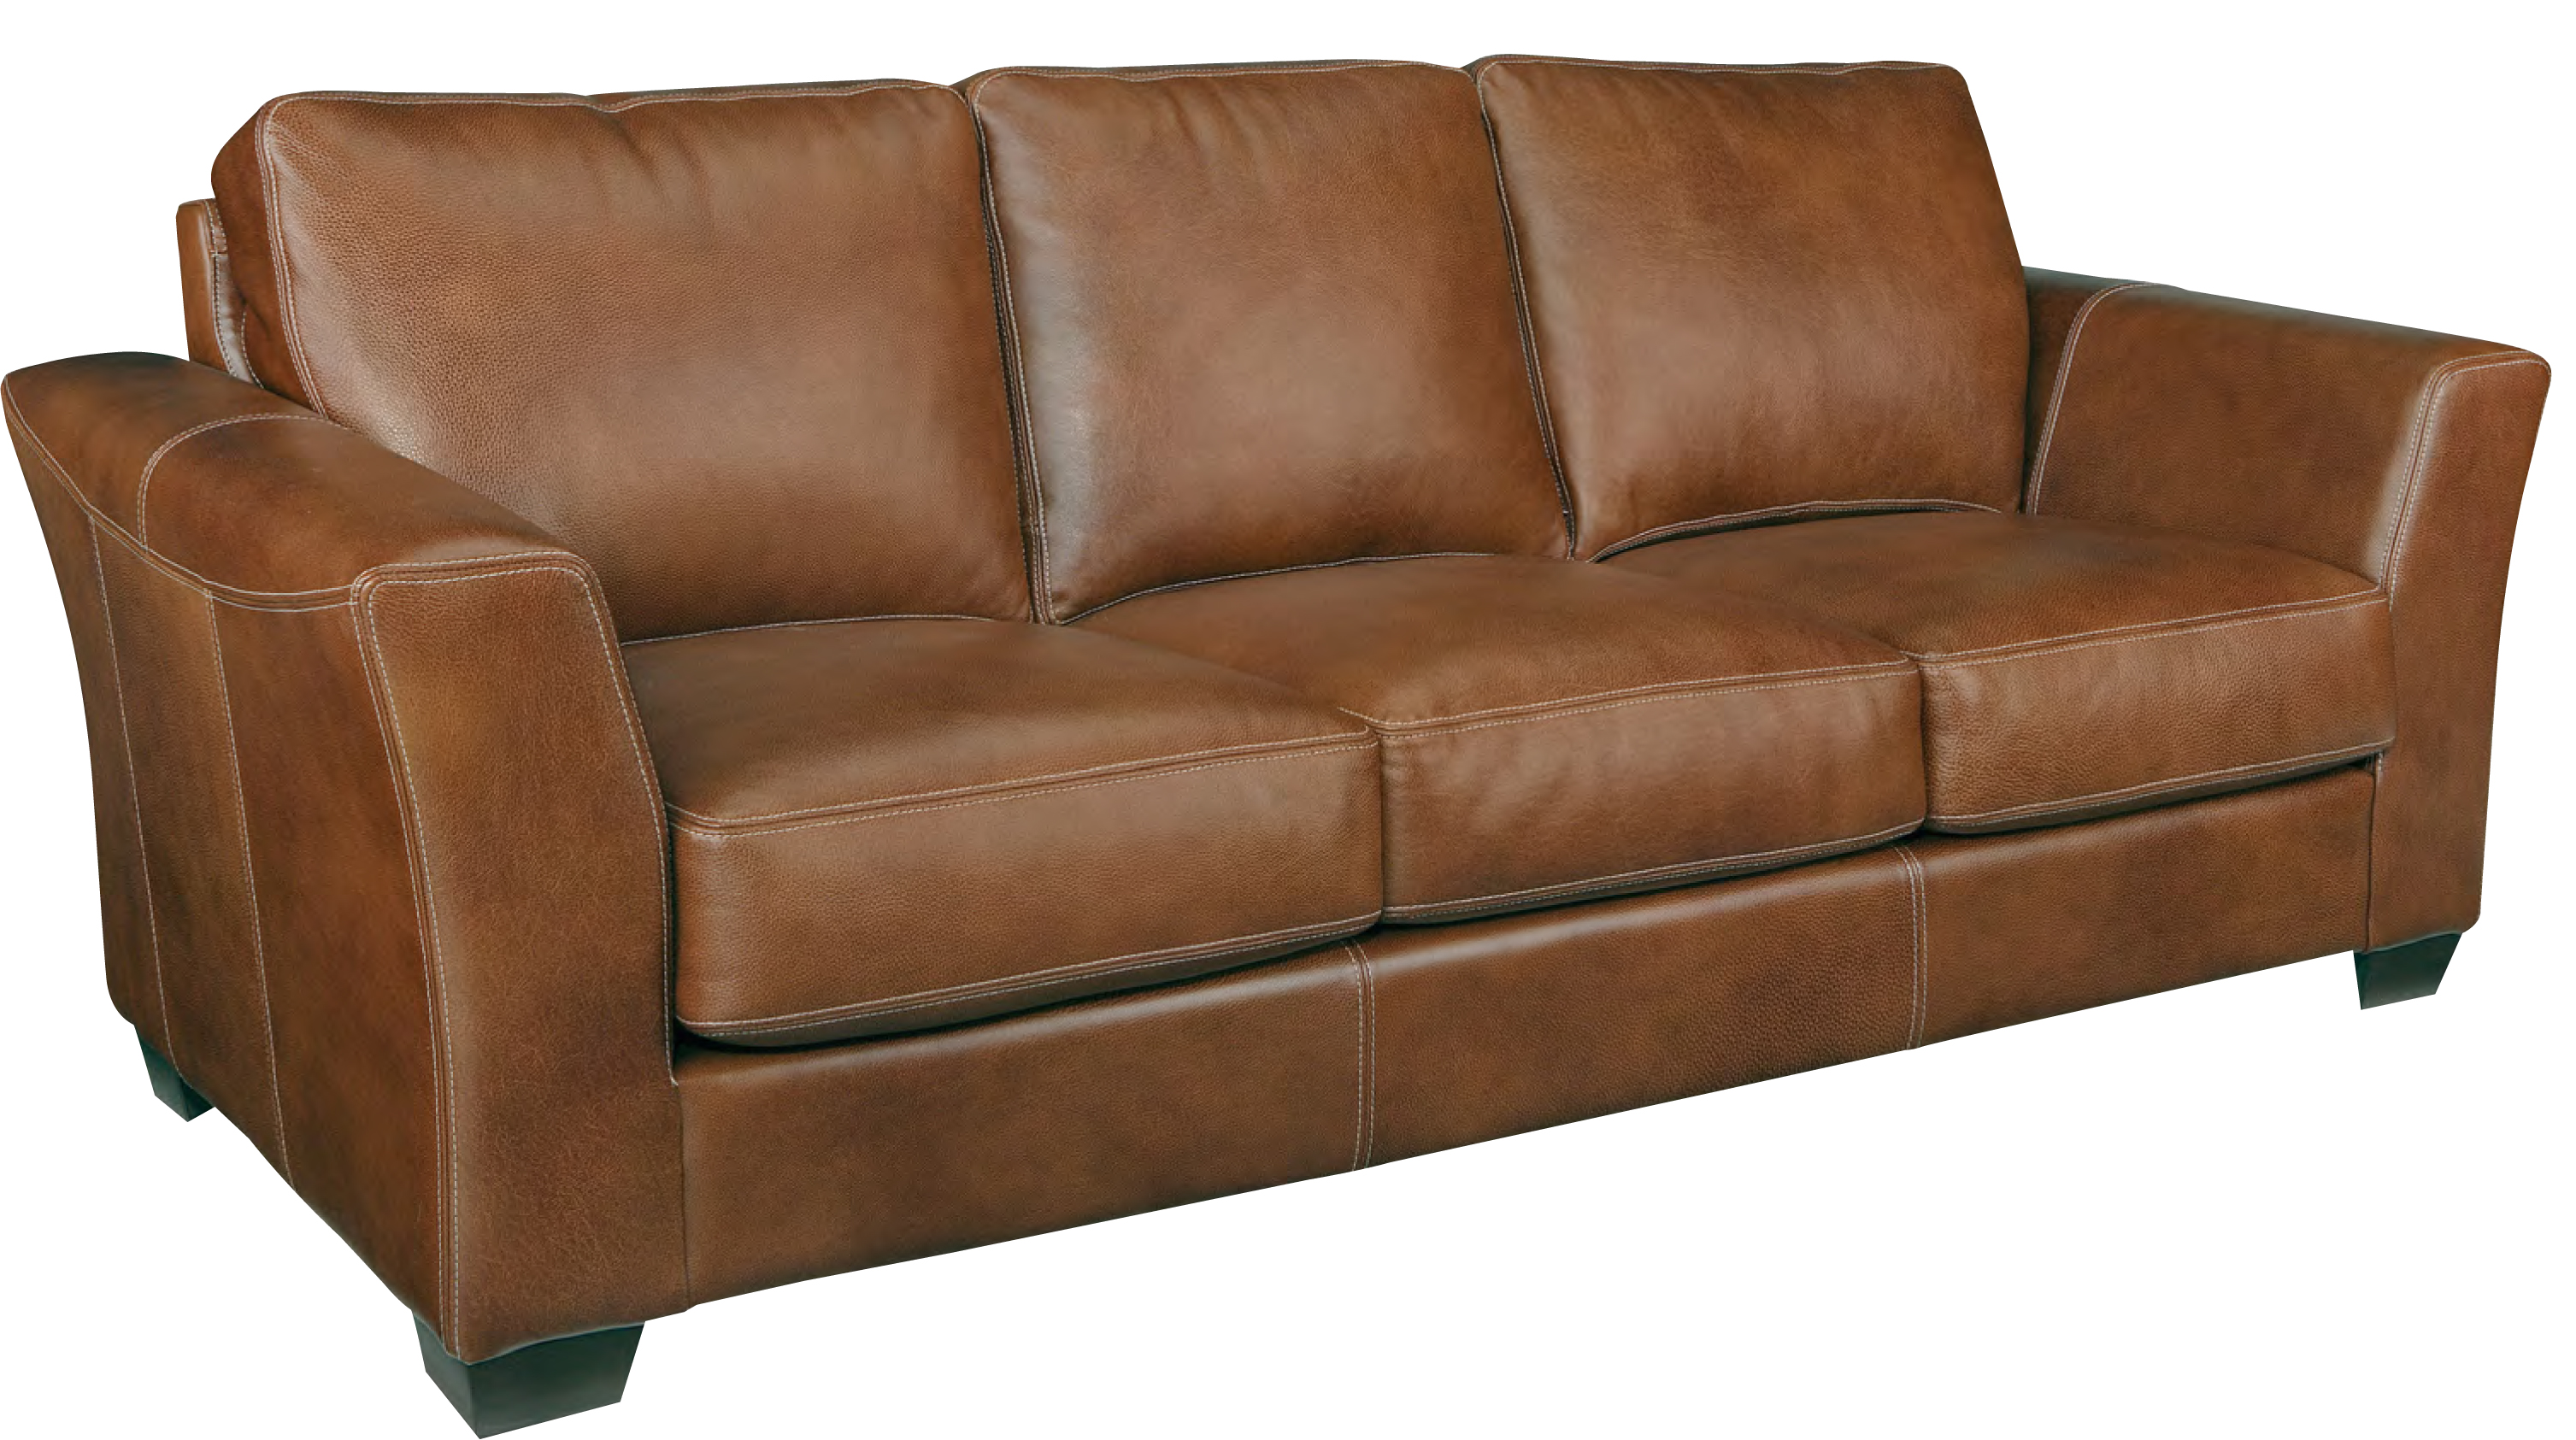 Leather Craft Bayview Stationary Sofa